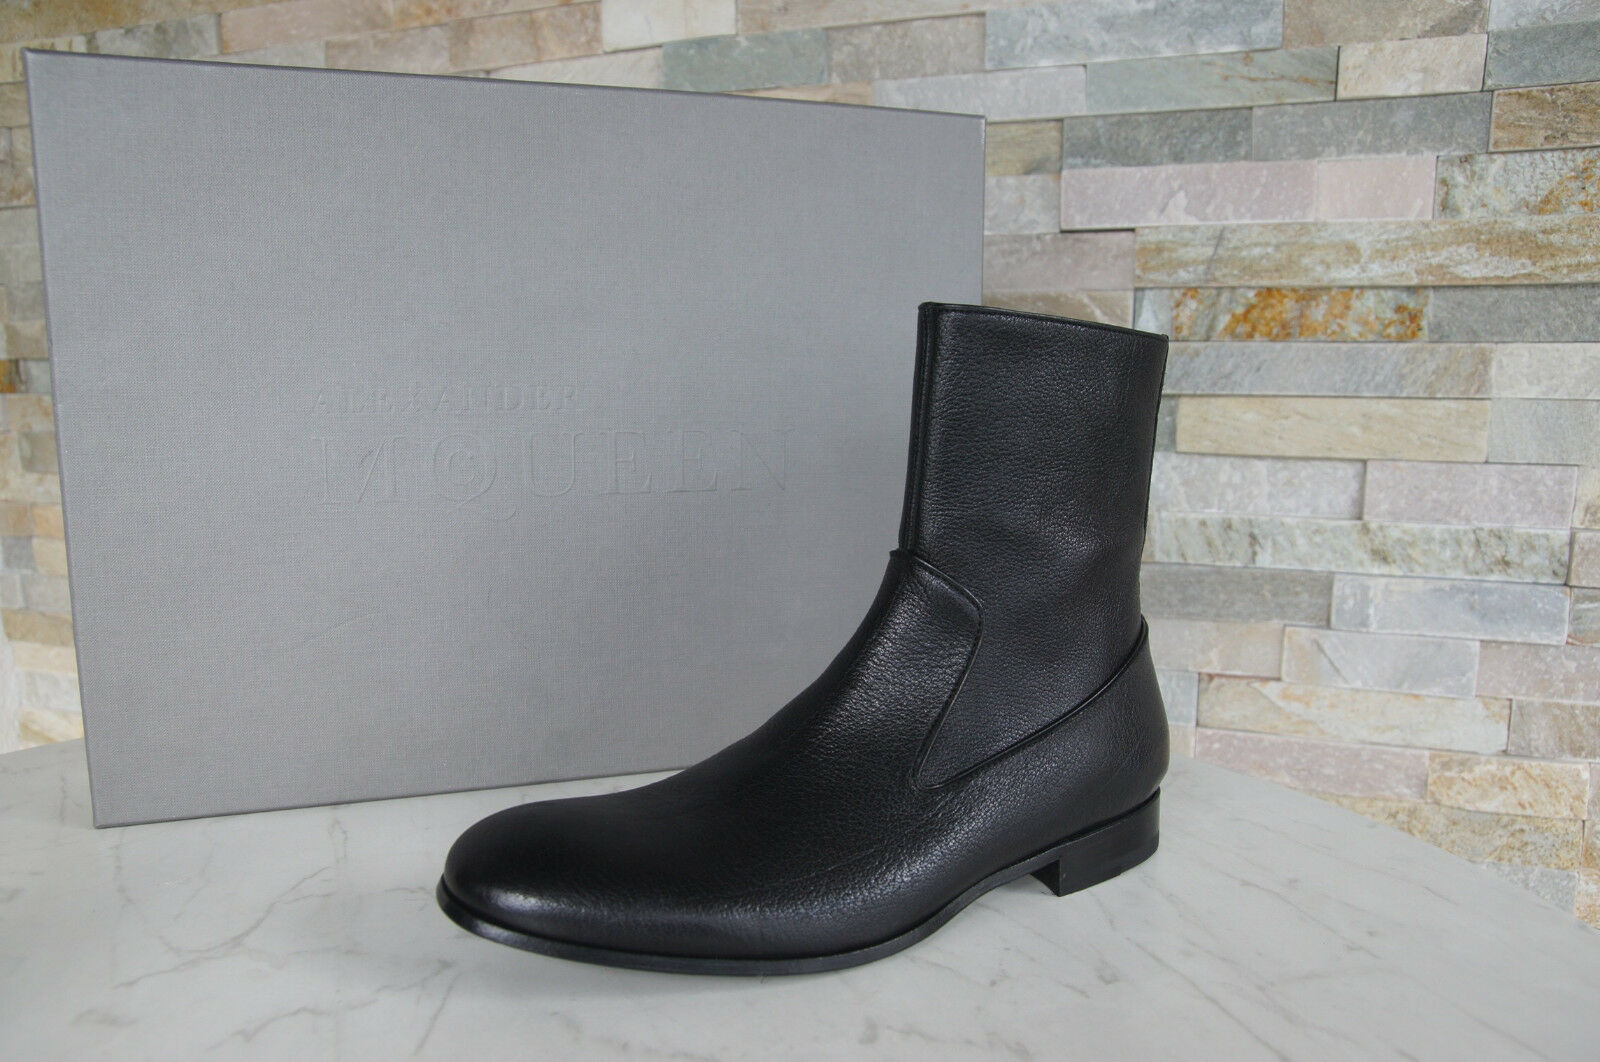 Alexander Mcqueen Ankle Boots Sz. 40 shoes Black New Previously